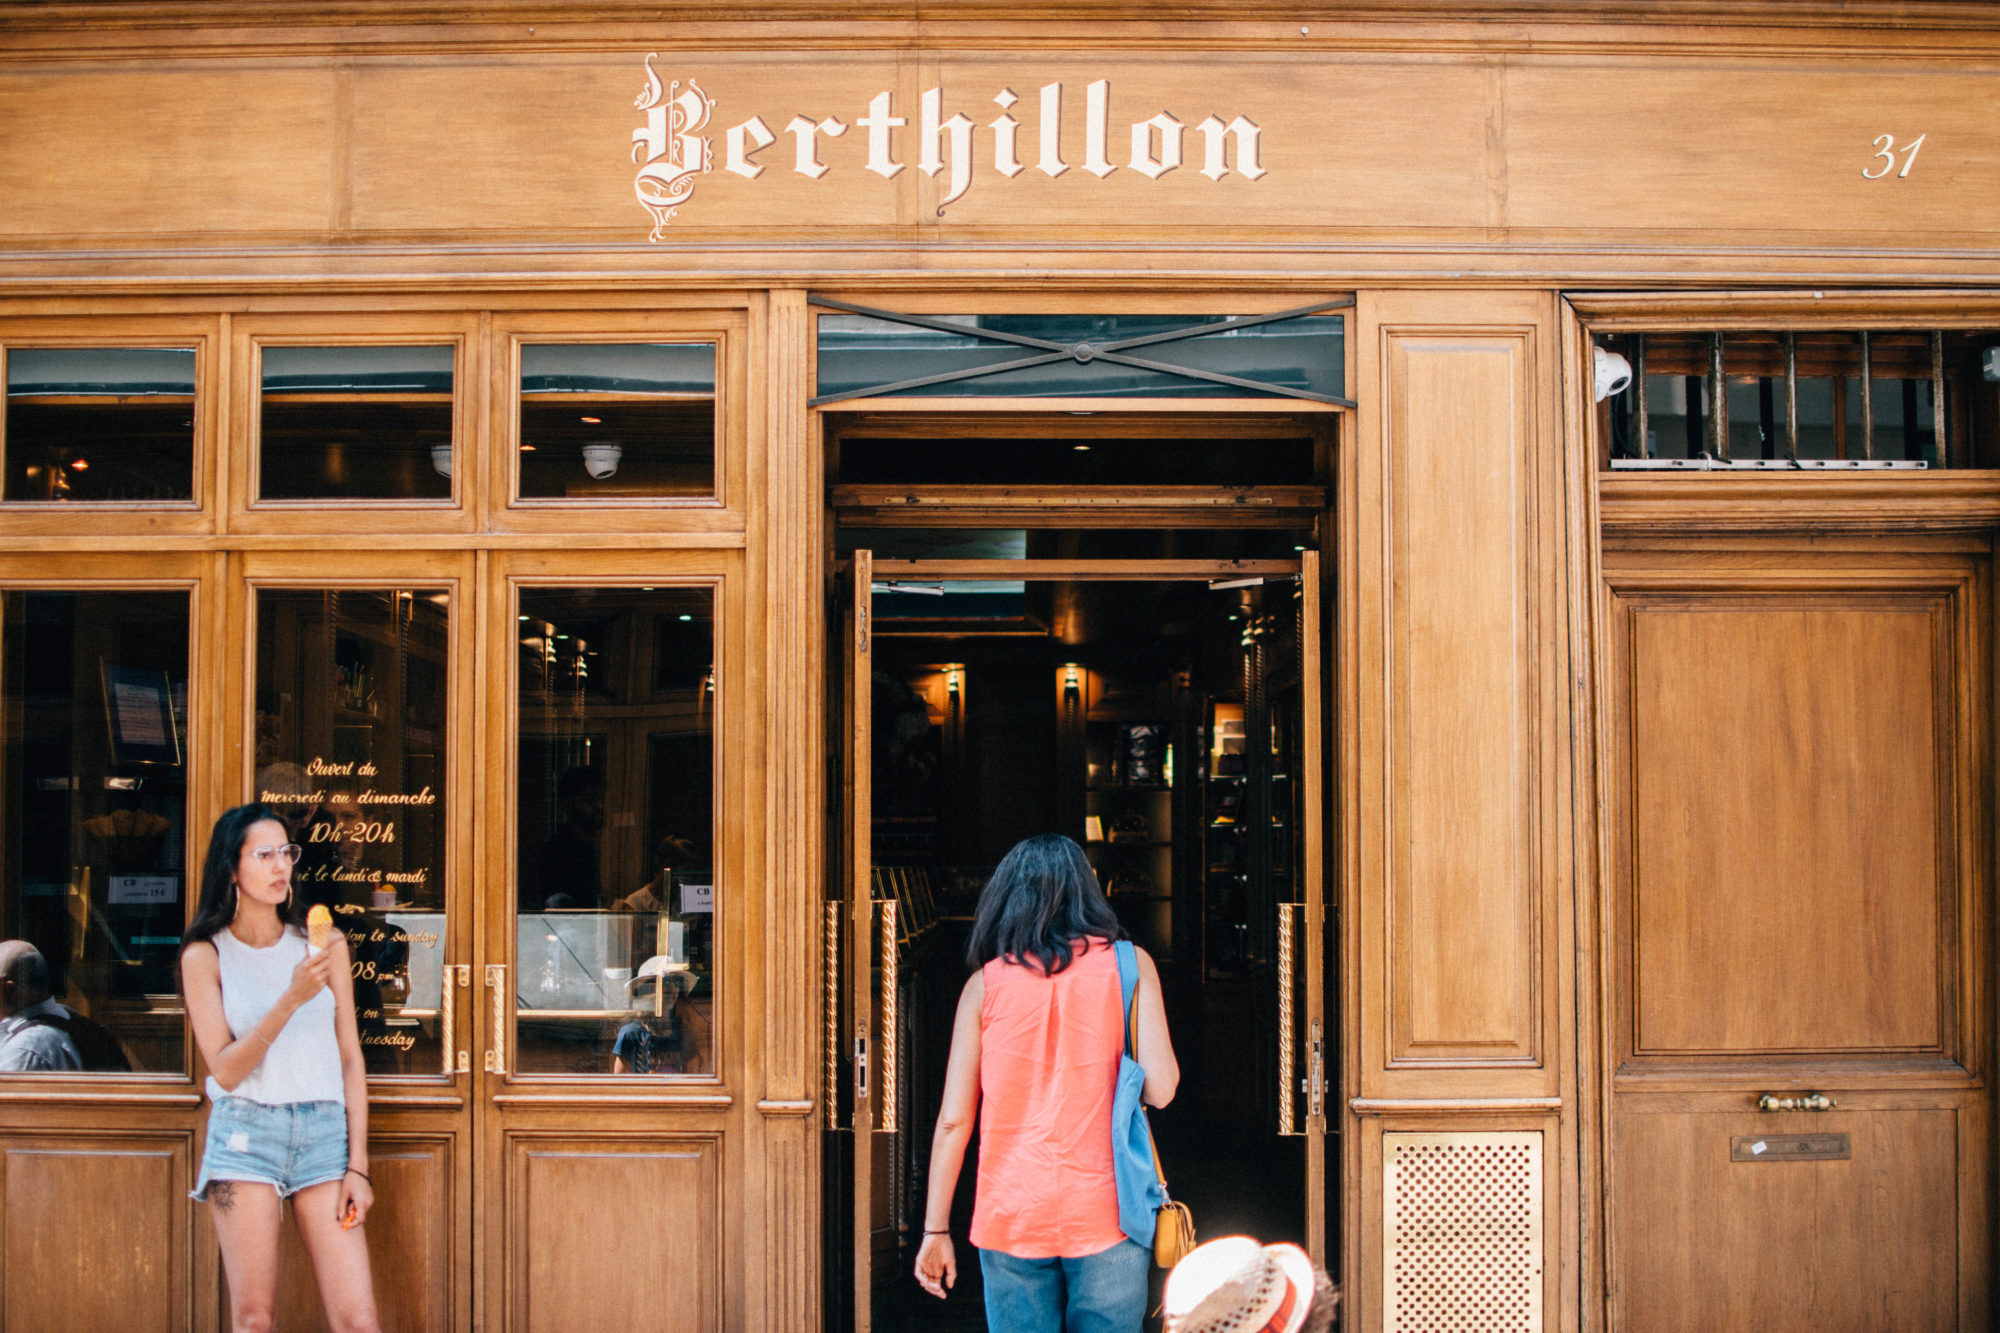 The wood-paneled exterior of one Paris's Berthillon ice cream shops with a young woman standing outside, enjoying one of their soft ice creams.